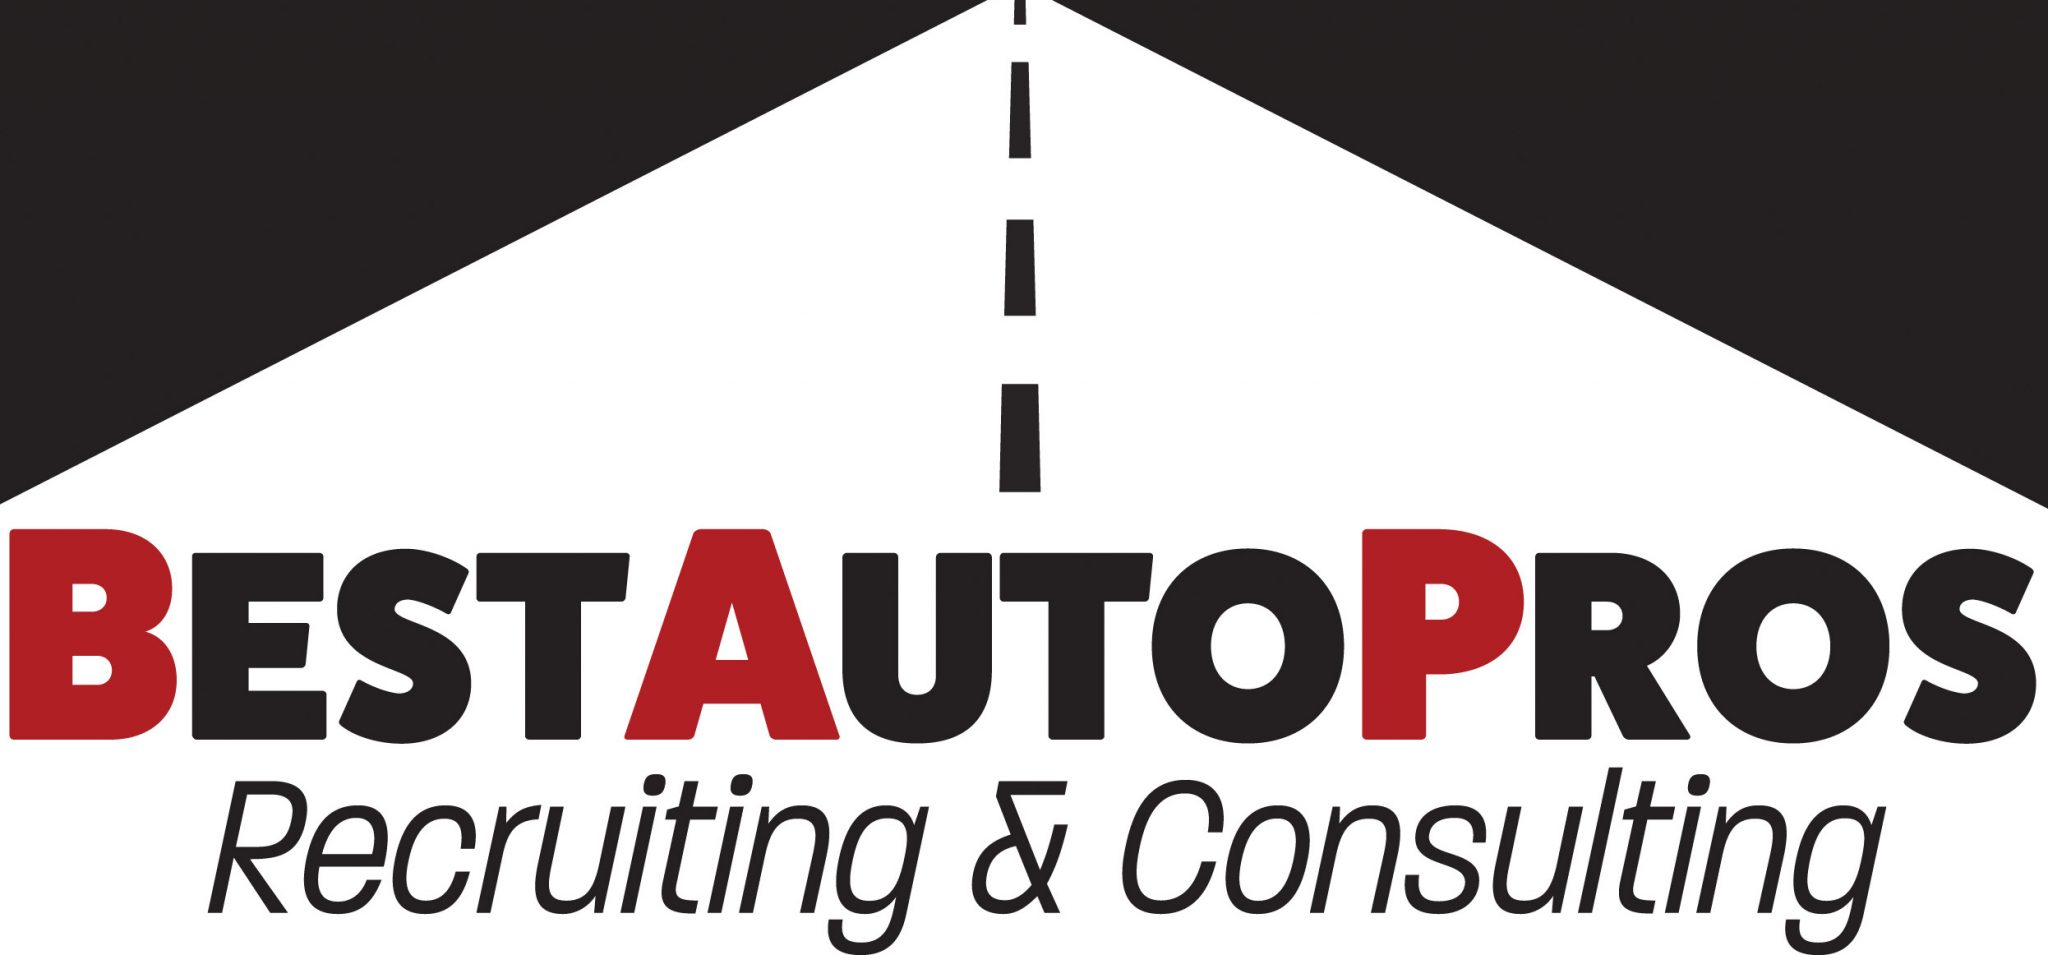 fixed operations director pensacola florida bestautopros recruiting consulting - Fixed Operations Director